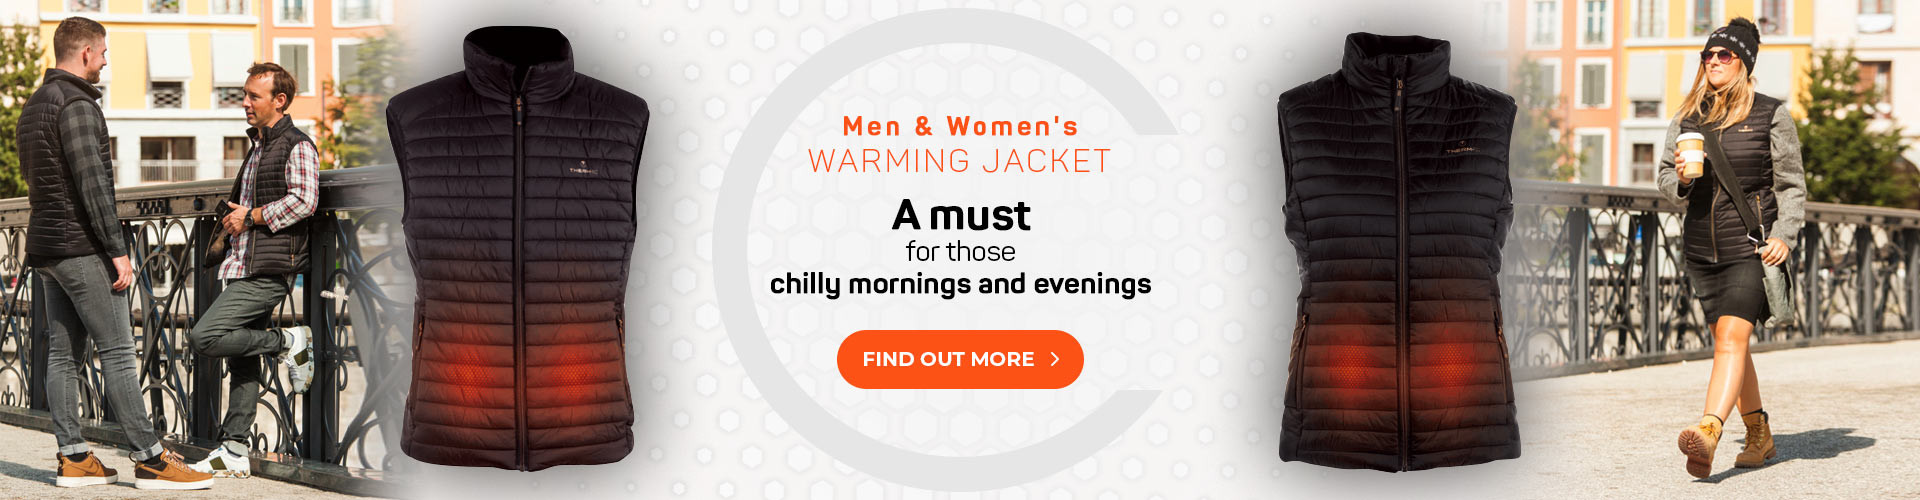 Heated vest : a must for those chilly morning and evenings